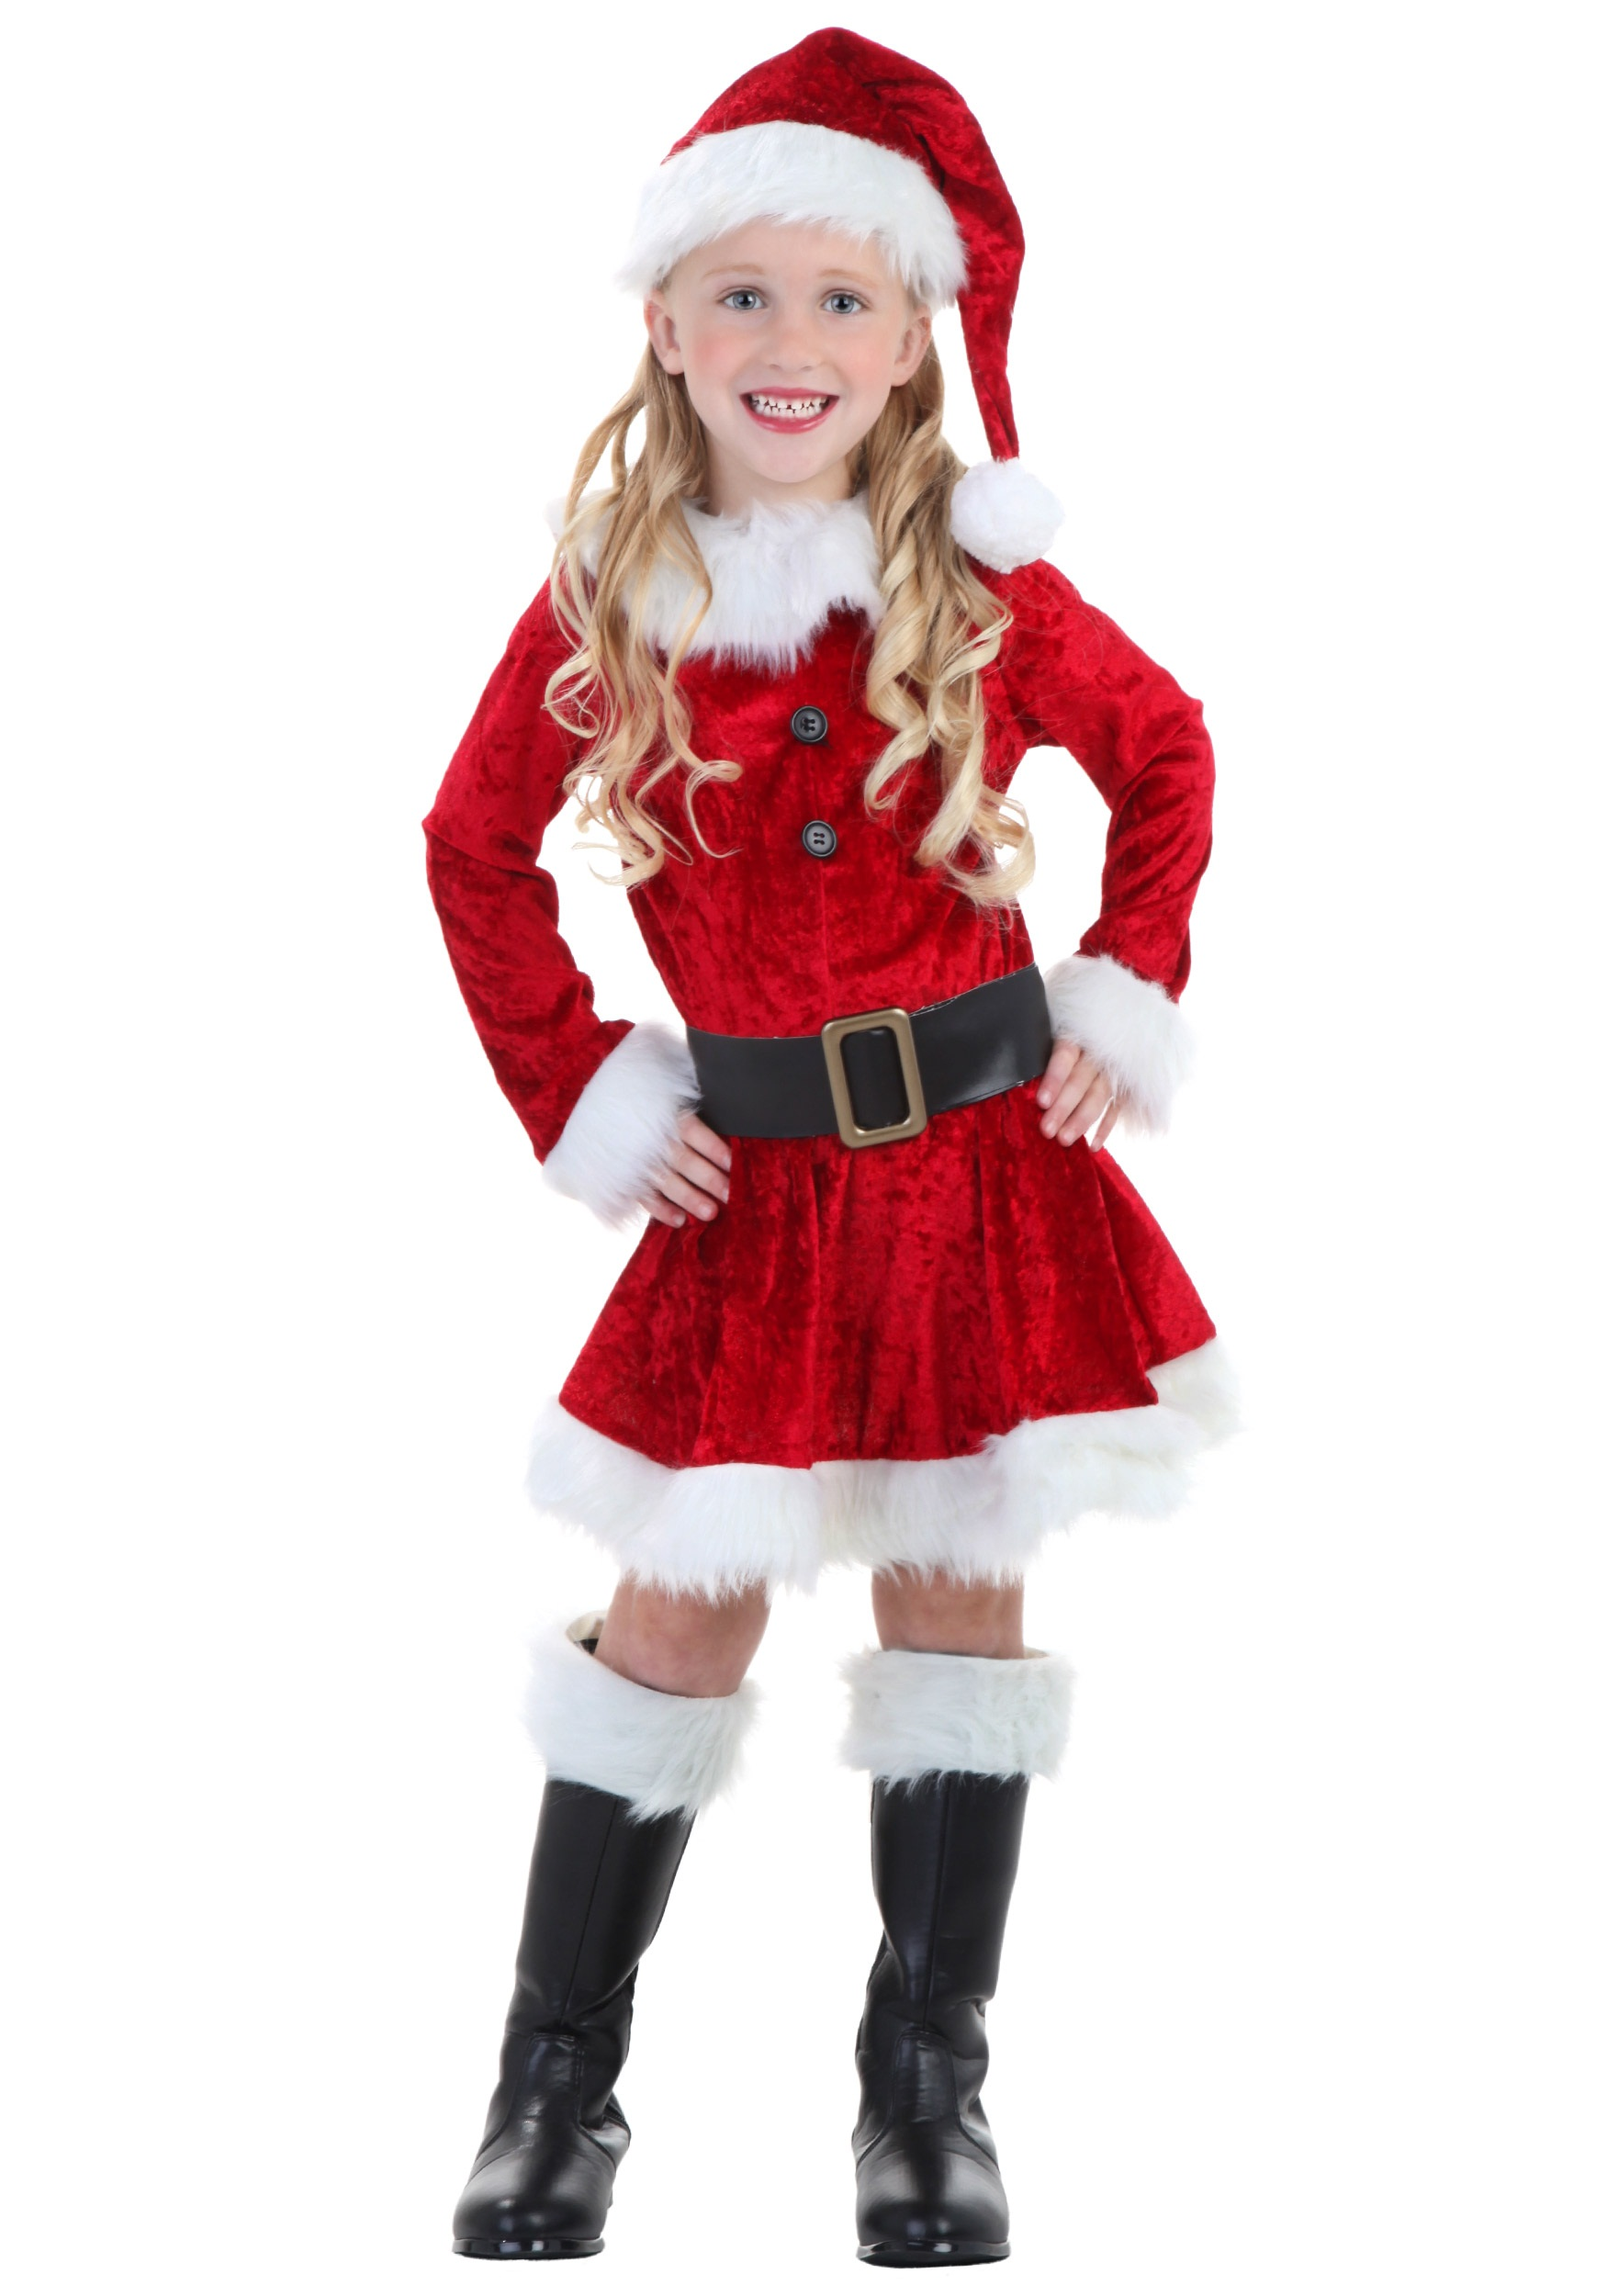 Mrs Claus tutu dress age 3-5 years with crown